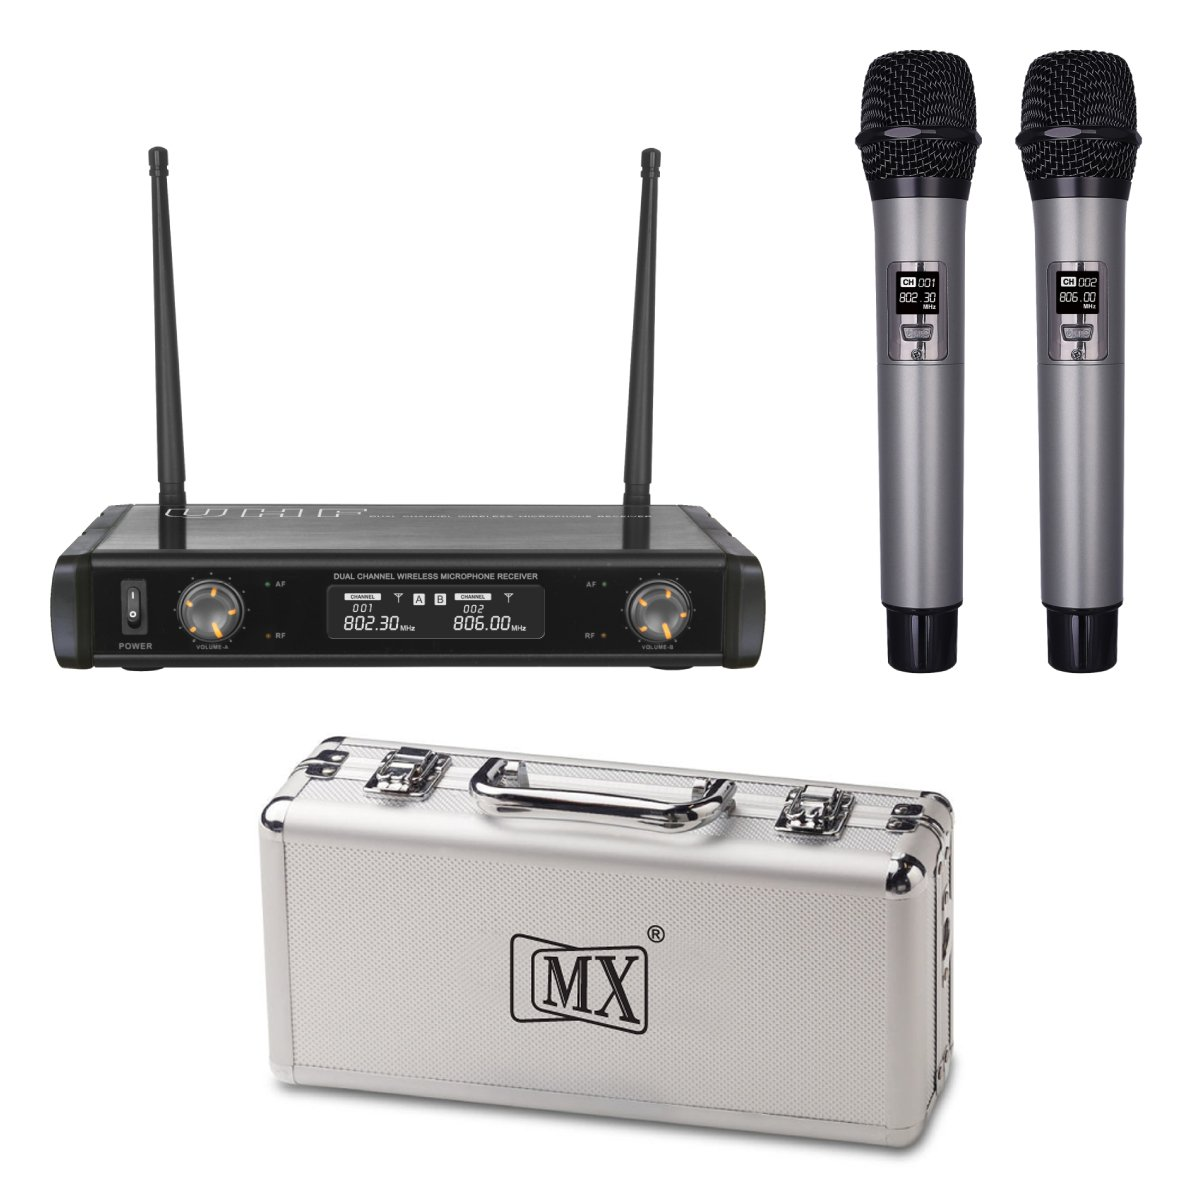 1c401b34 MX UHF Wireless Cordless Microphone System 2 Handheld Mic Fixed Frequency  UHF400: Amazon.in: Musical Instruments